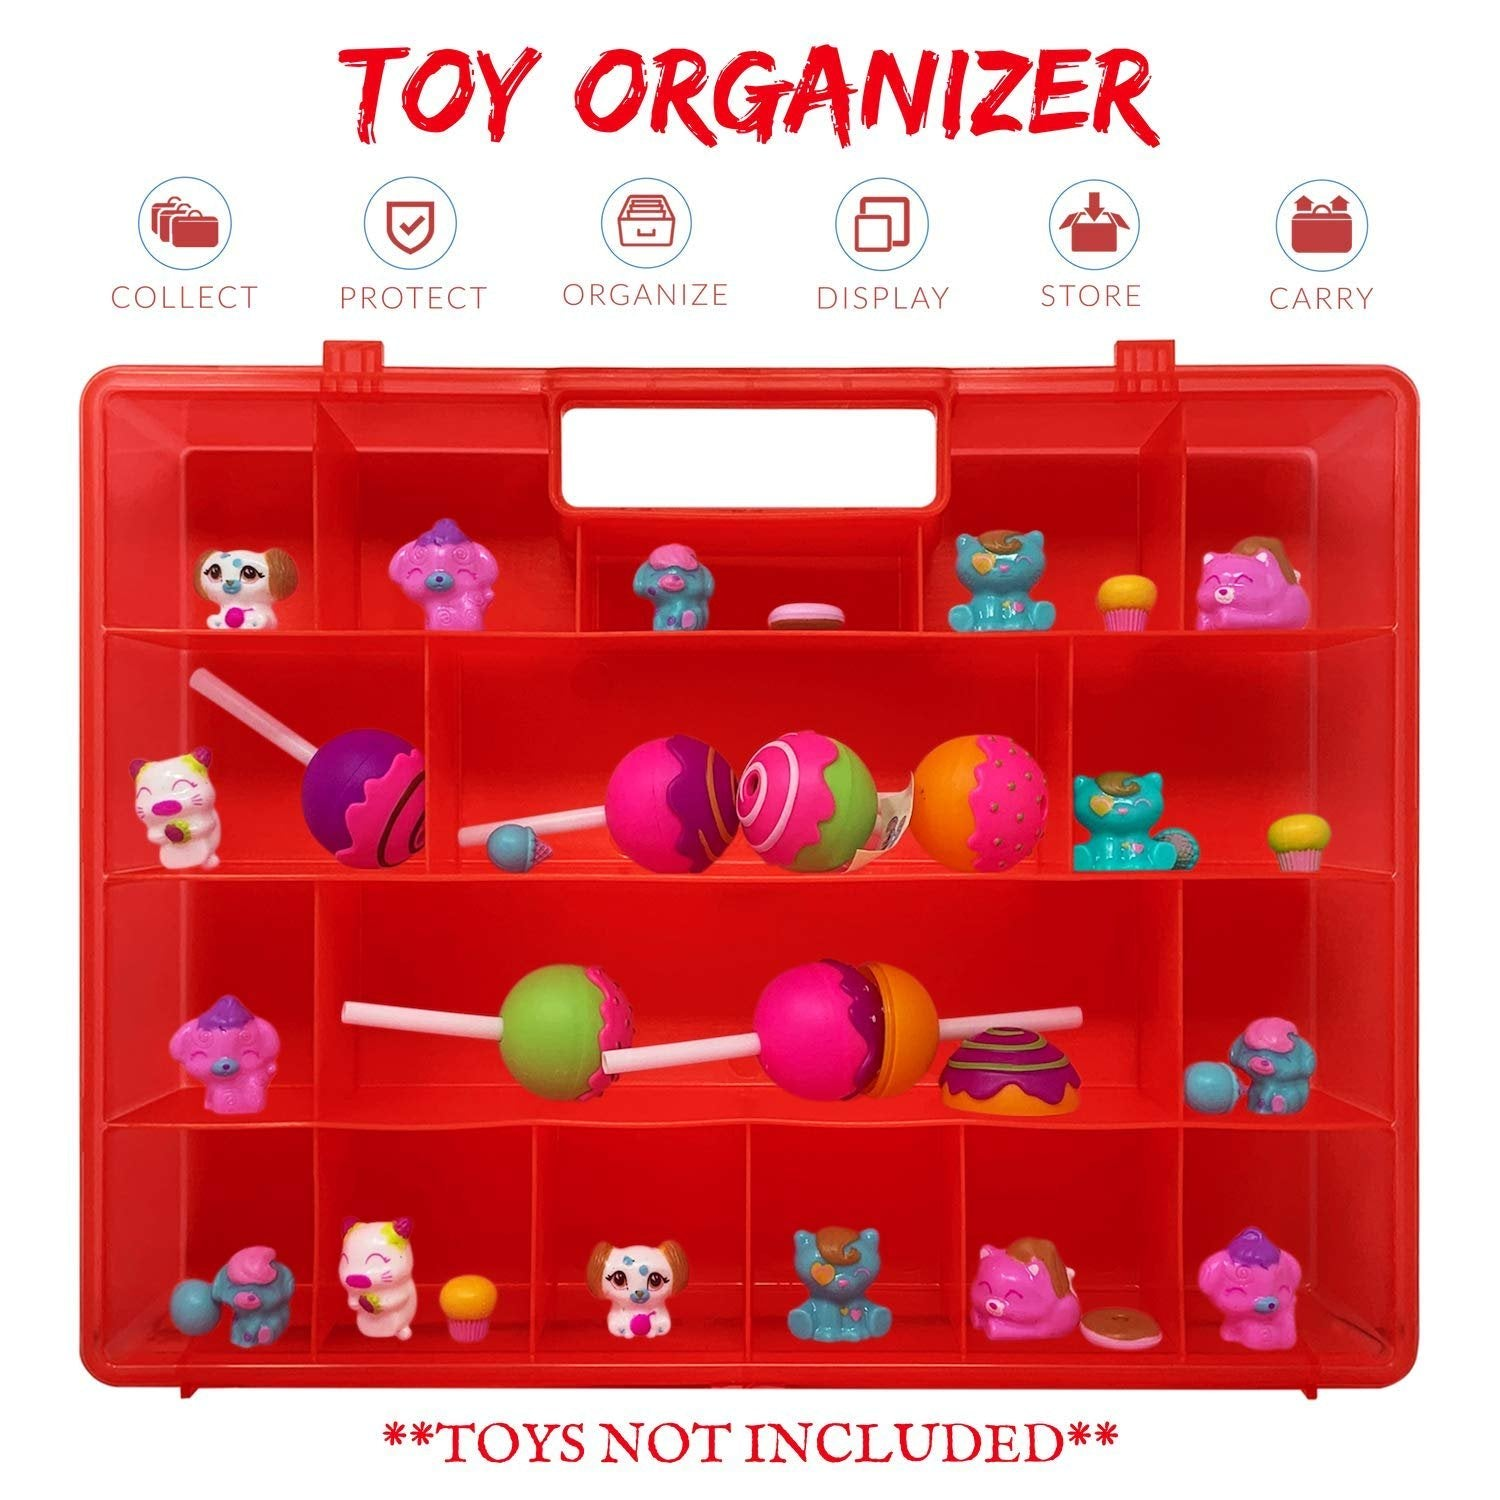 Life Made Better, Kid's Carry-Along Fun Red Case, Compatible with CakePop Cuties Mini Toys. Perfect Sized Mini-Figurines Organizer